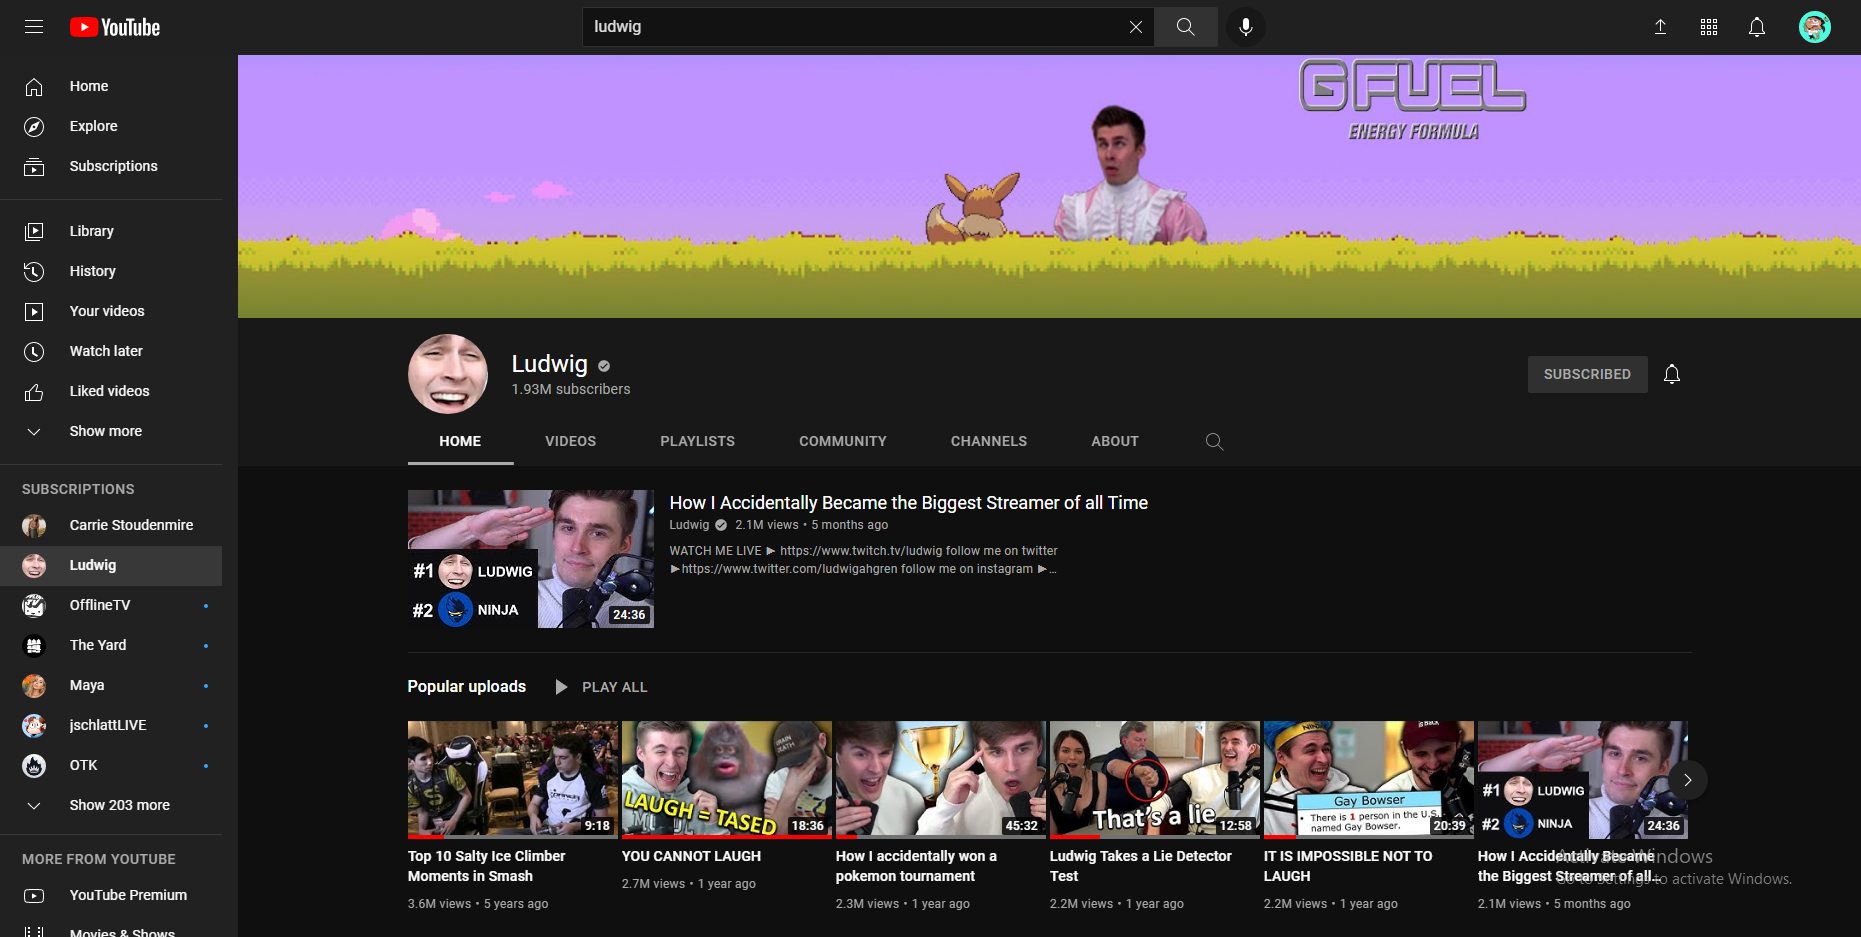 A screenshot displaying the home page of Ludwig's YouTube Channel